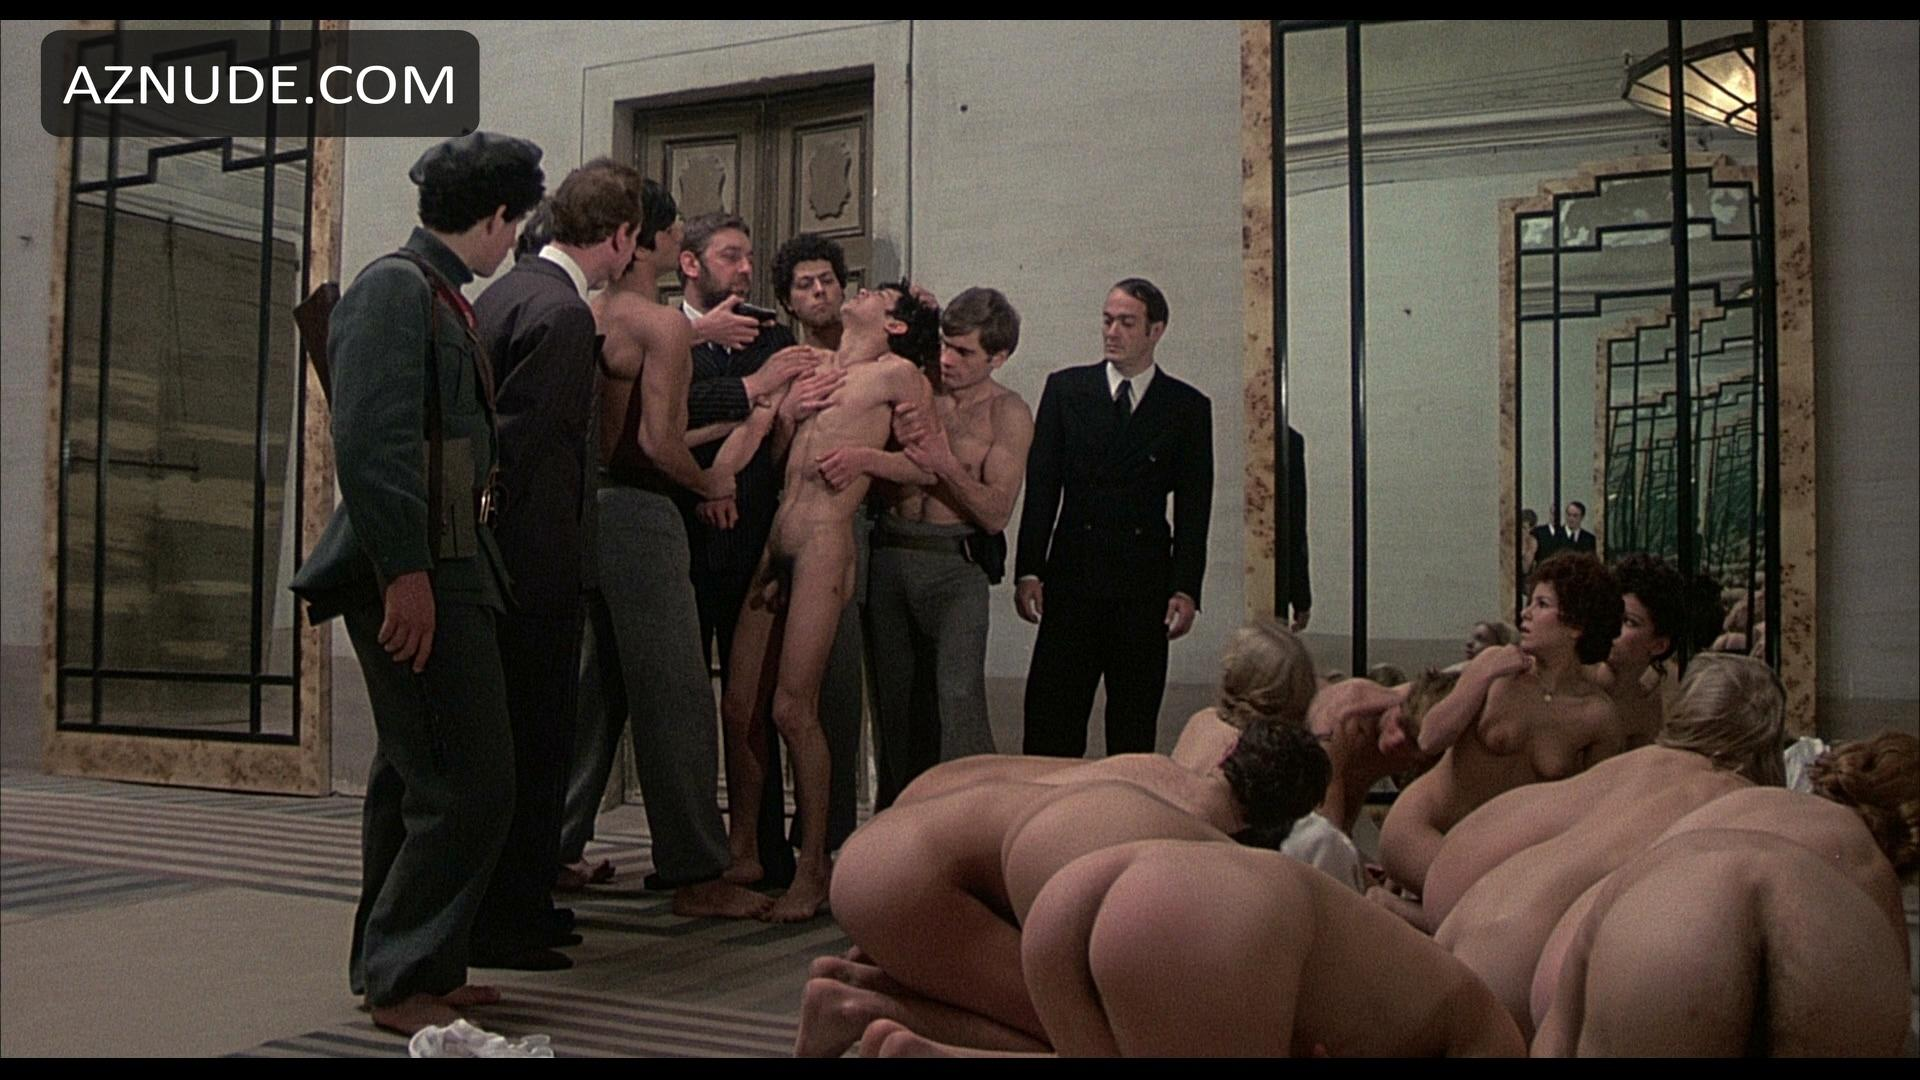 A Touch Of Sex  1974 Restored  xHamstercom